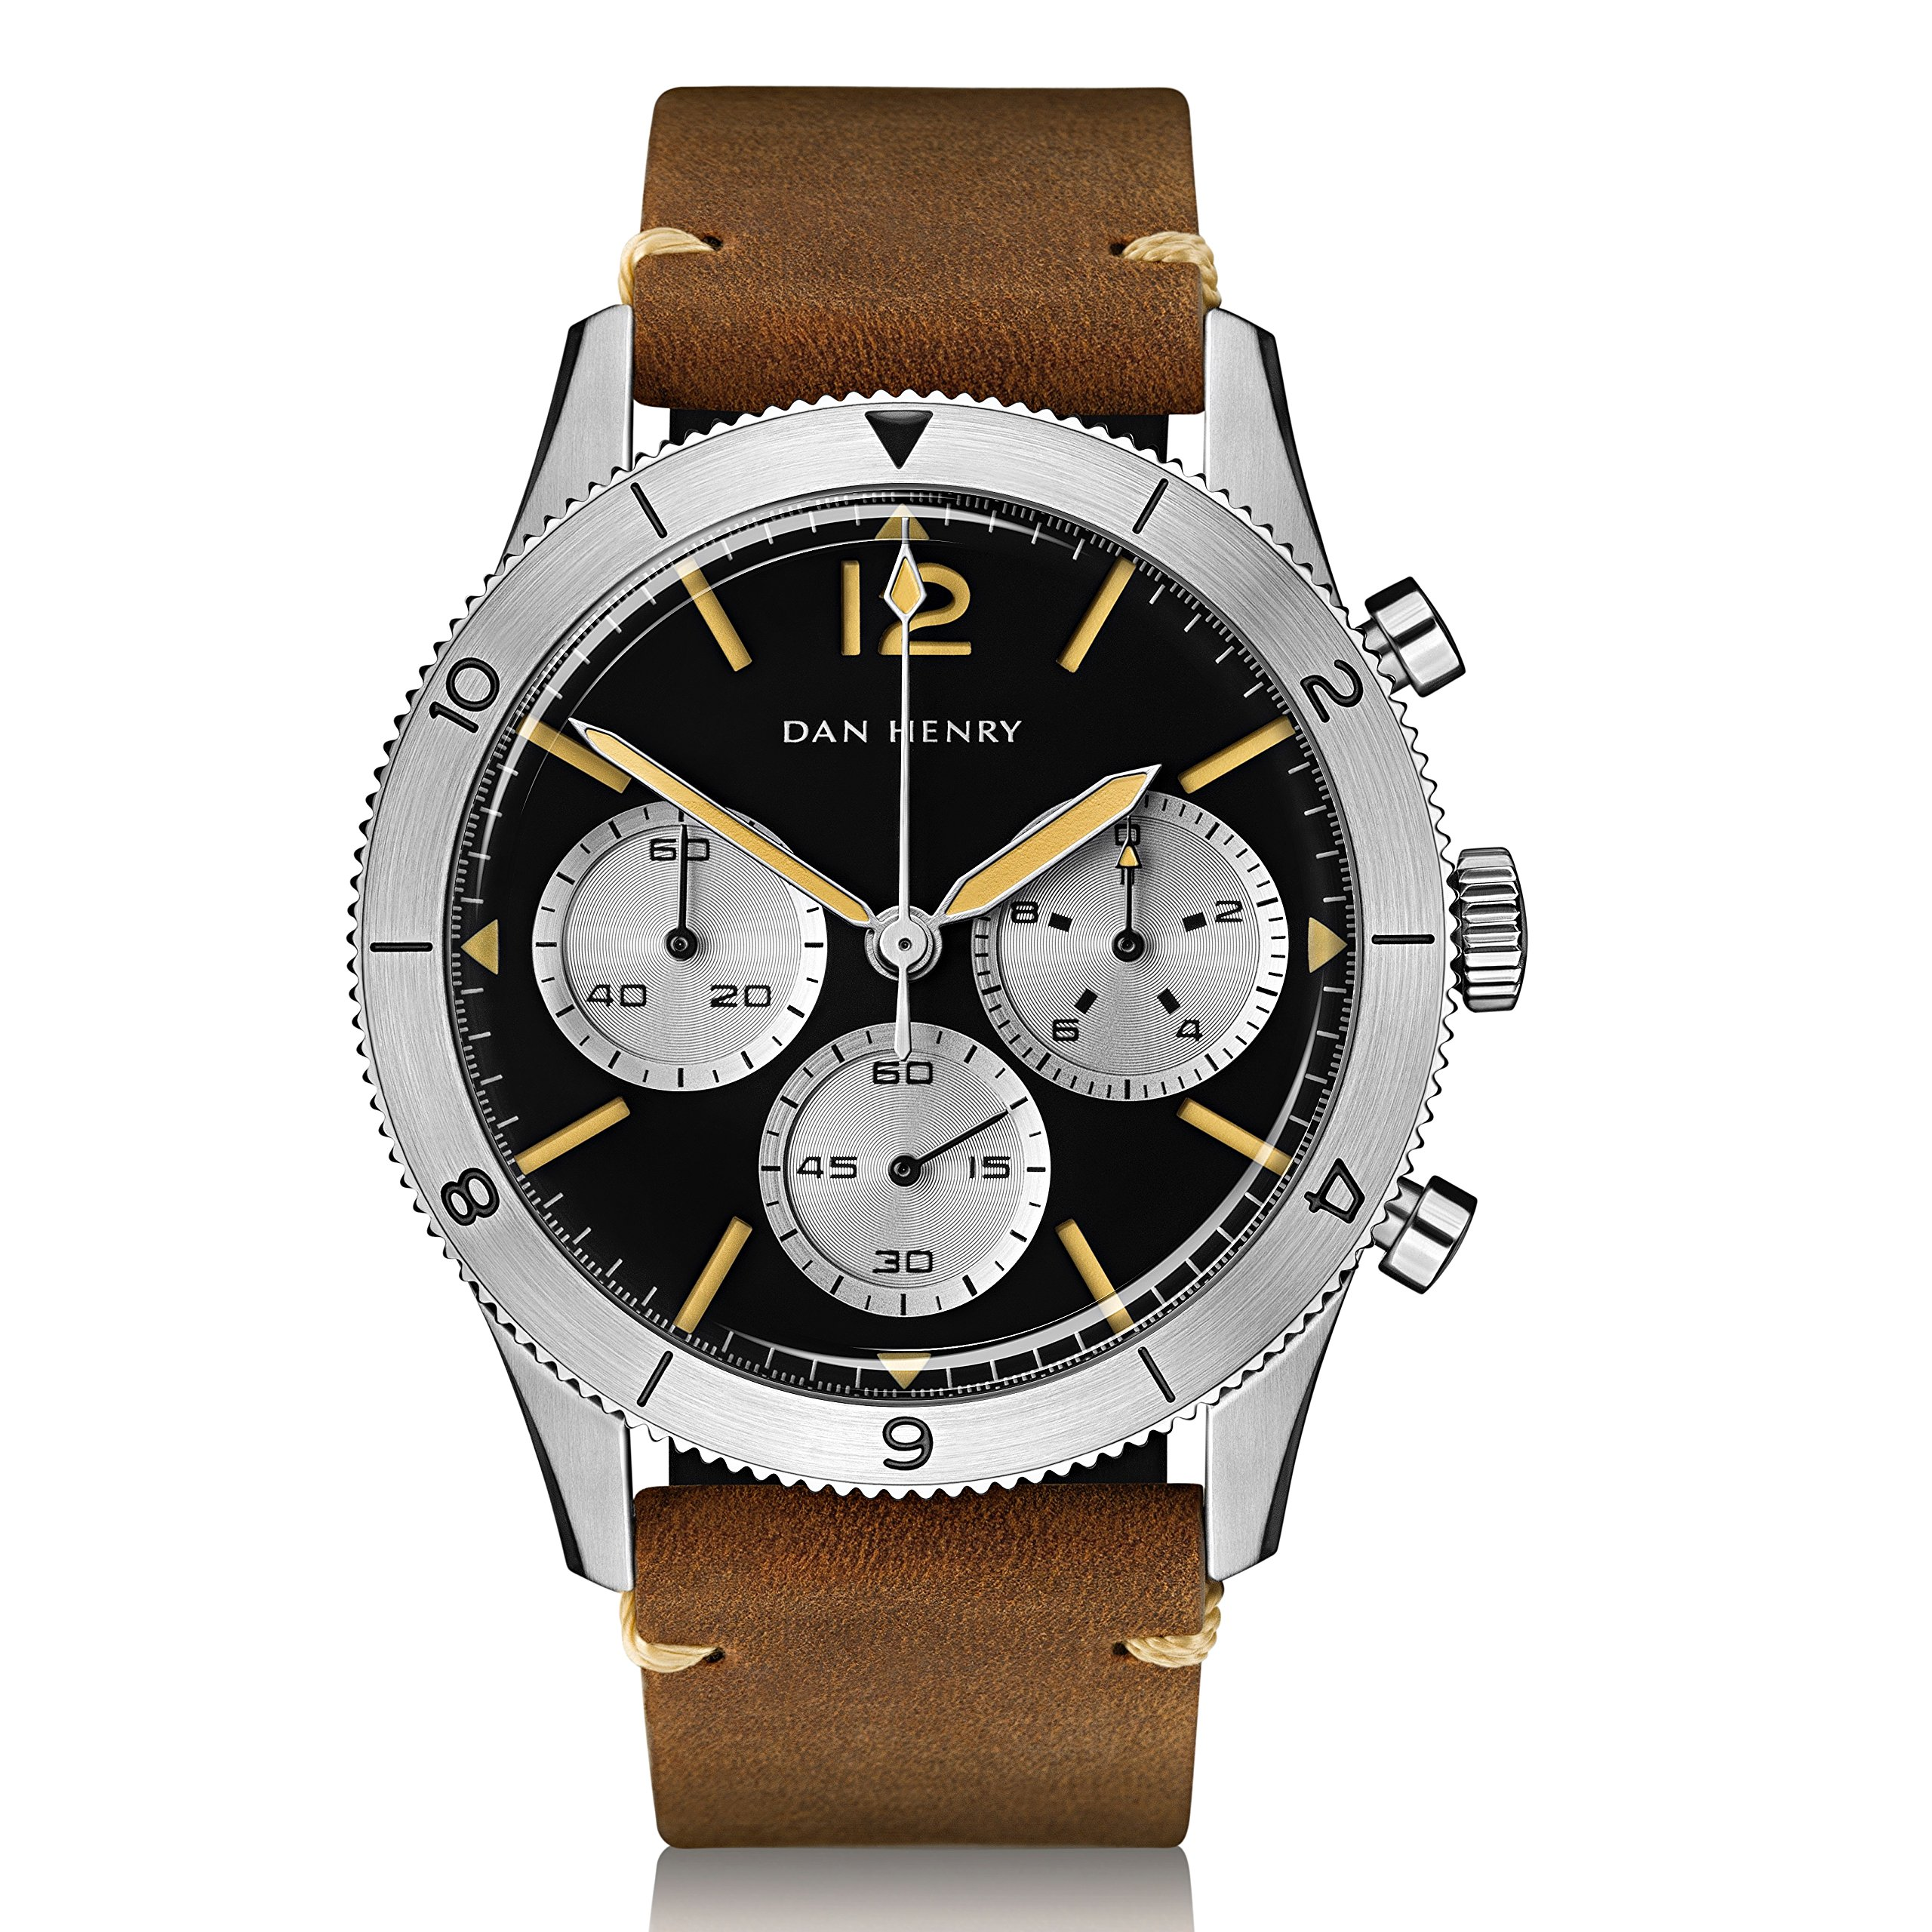 Dan Henry 1963 Pilot Chronograph, Sandwich Dial with Silver GMT Bezel, Limited Edition, 42.5mm Stainless Steel Case, Brown Italian Leather Strap + Black Nato Strap by Dan Henry